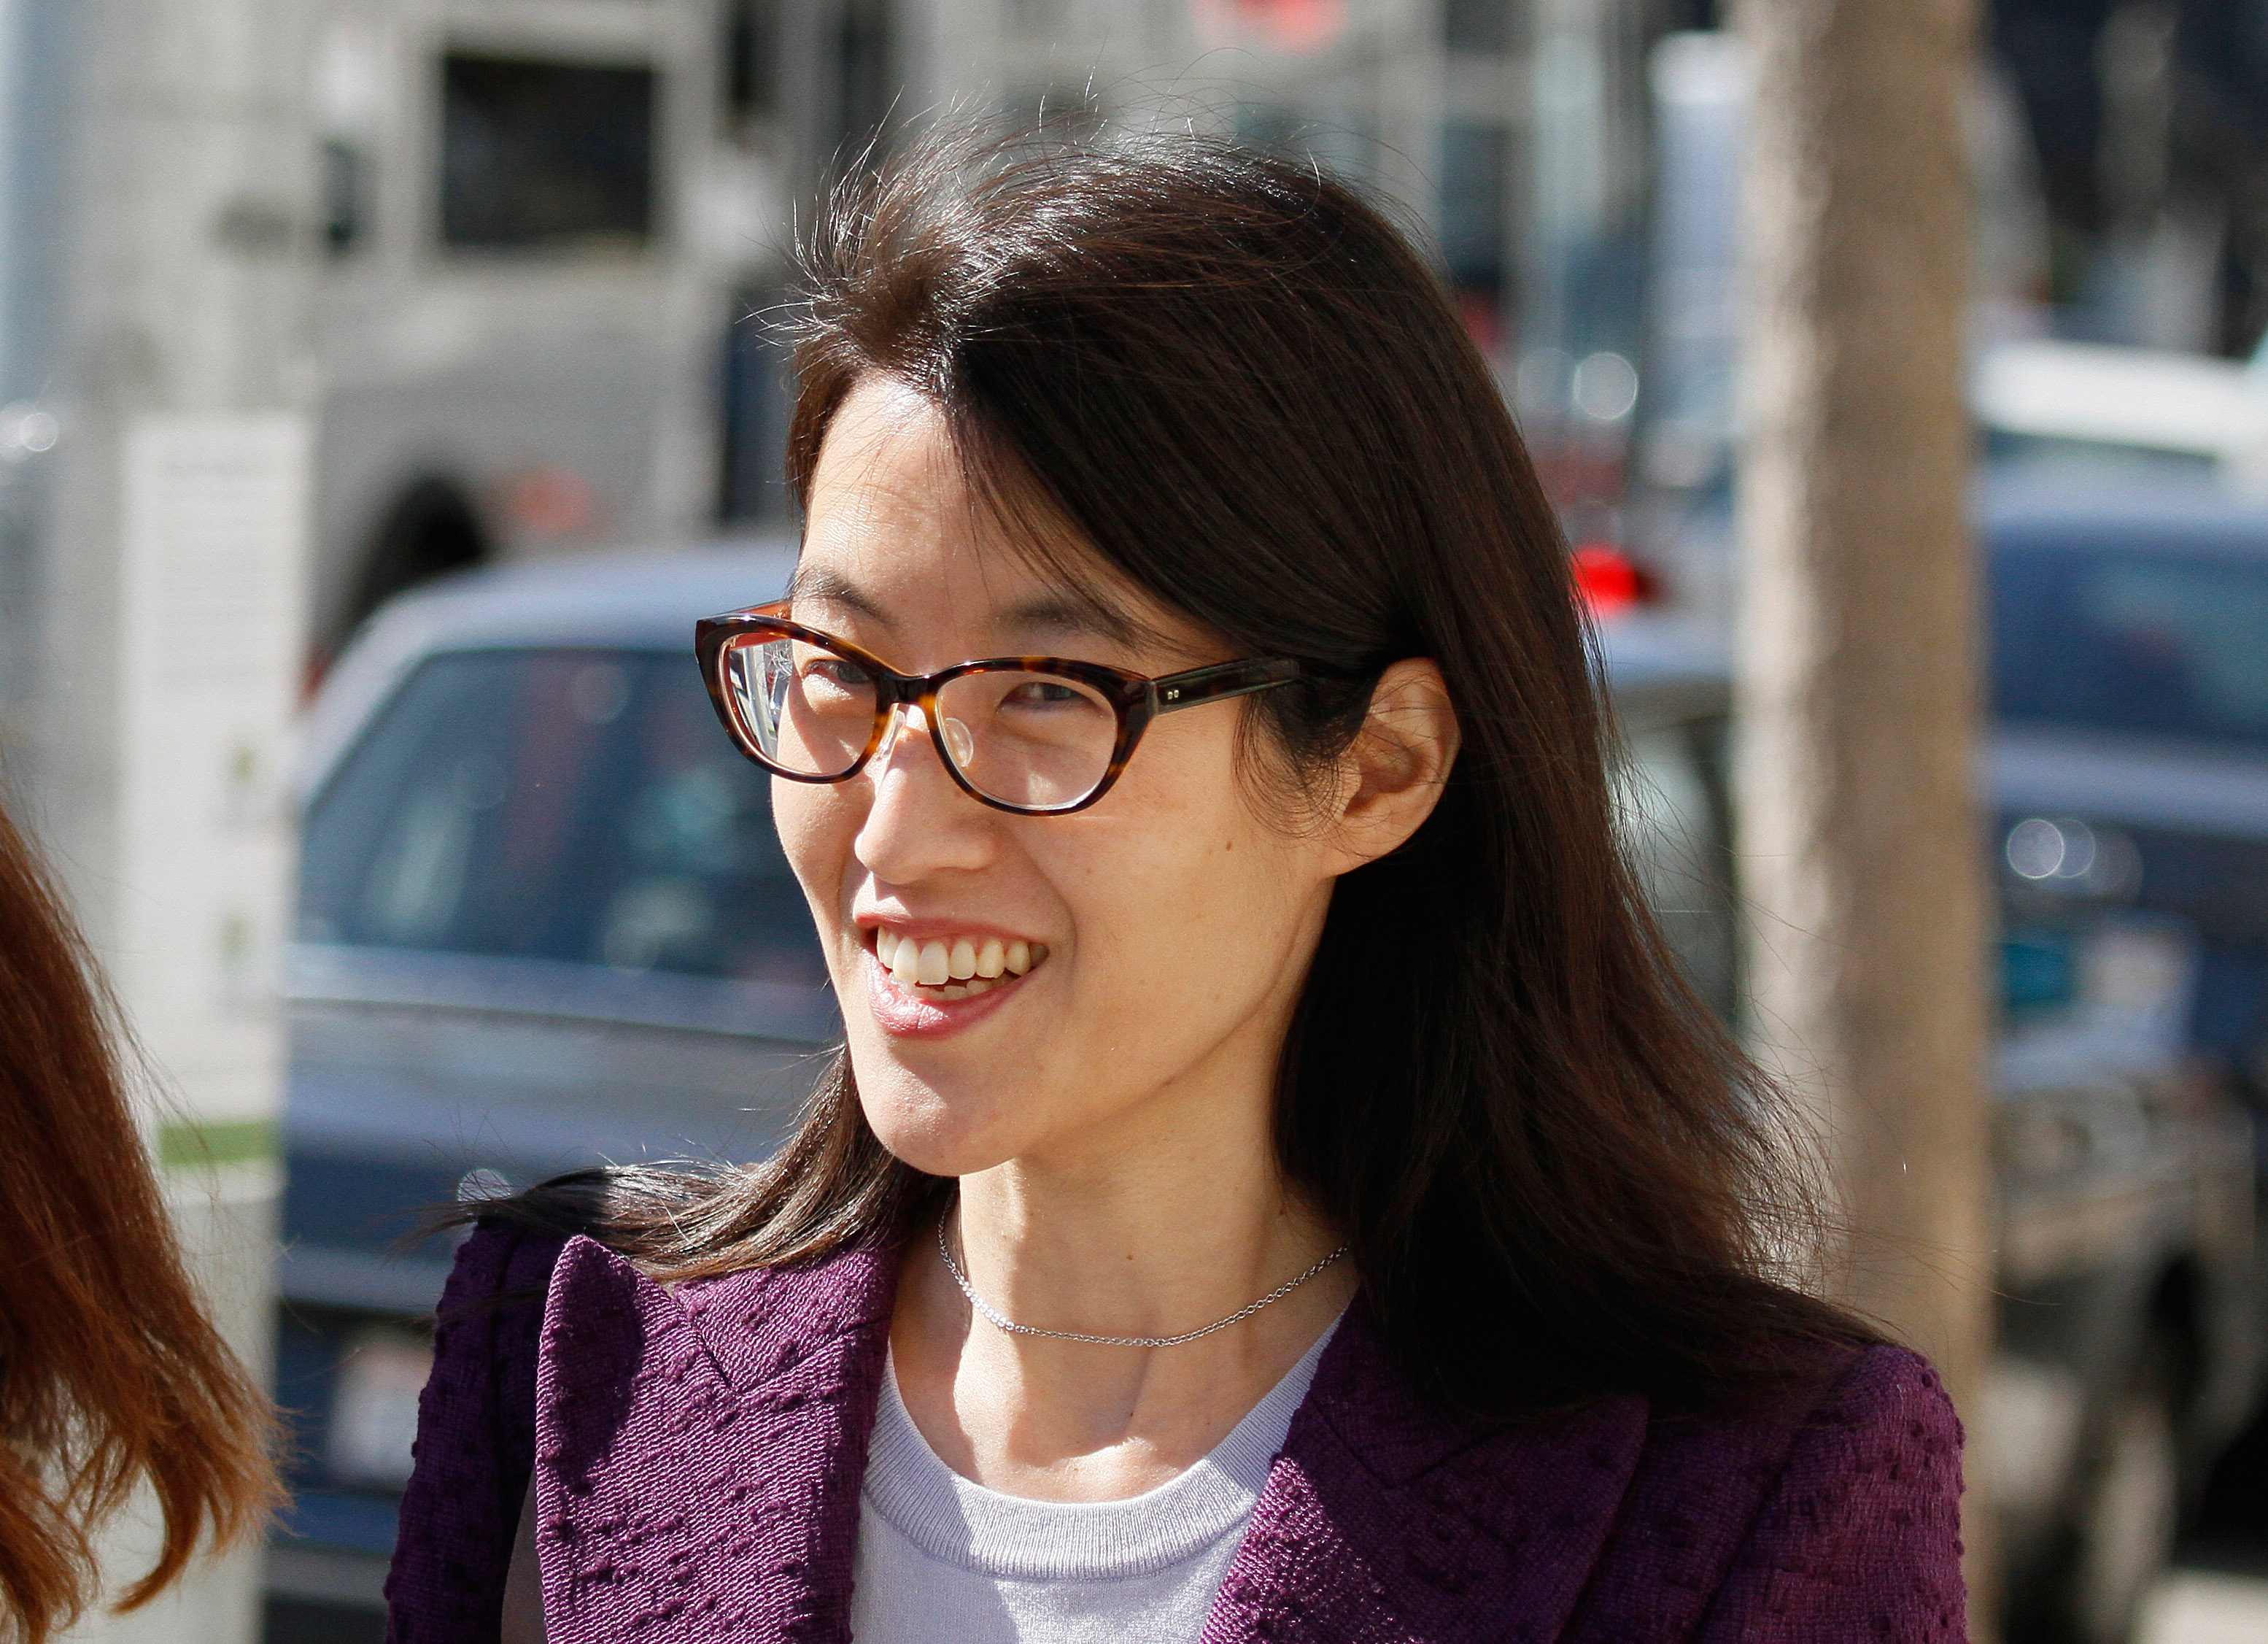 Ellen Pao, the interim chief of Reddit, has alleged she faced gender discrimination from former employer Silicon Valley venture-capital firm Kleiner Perkins Caulfield & Byers